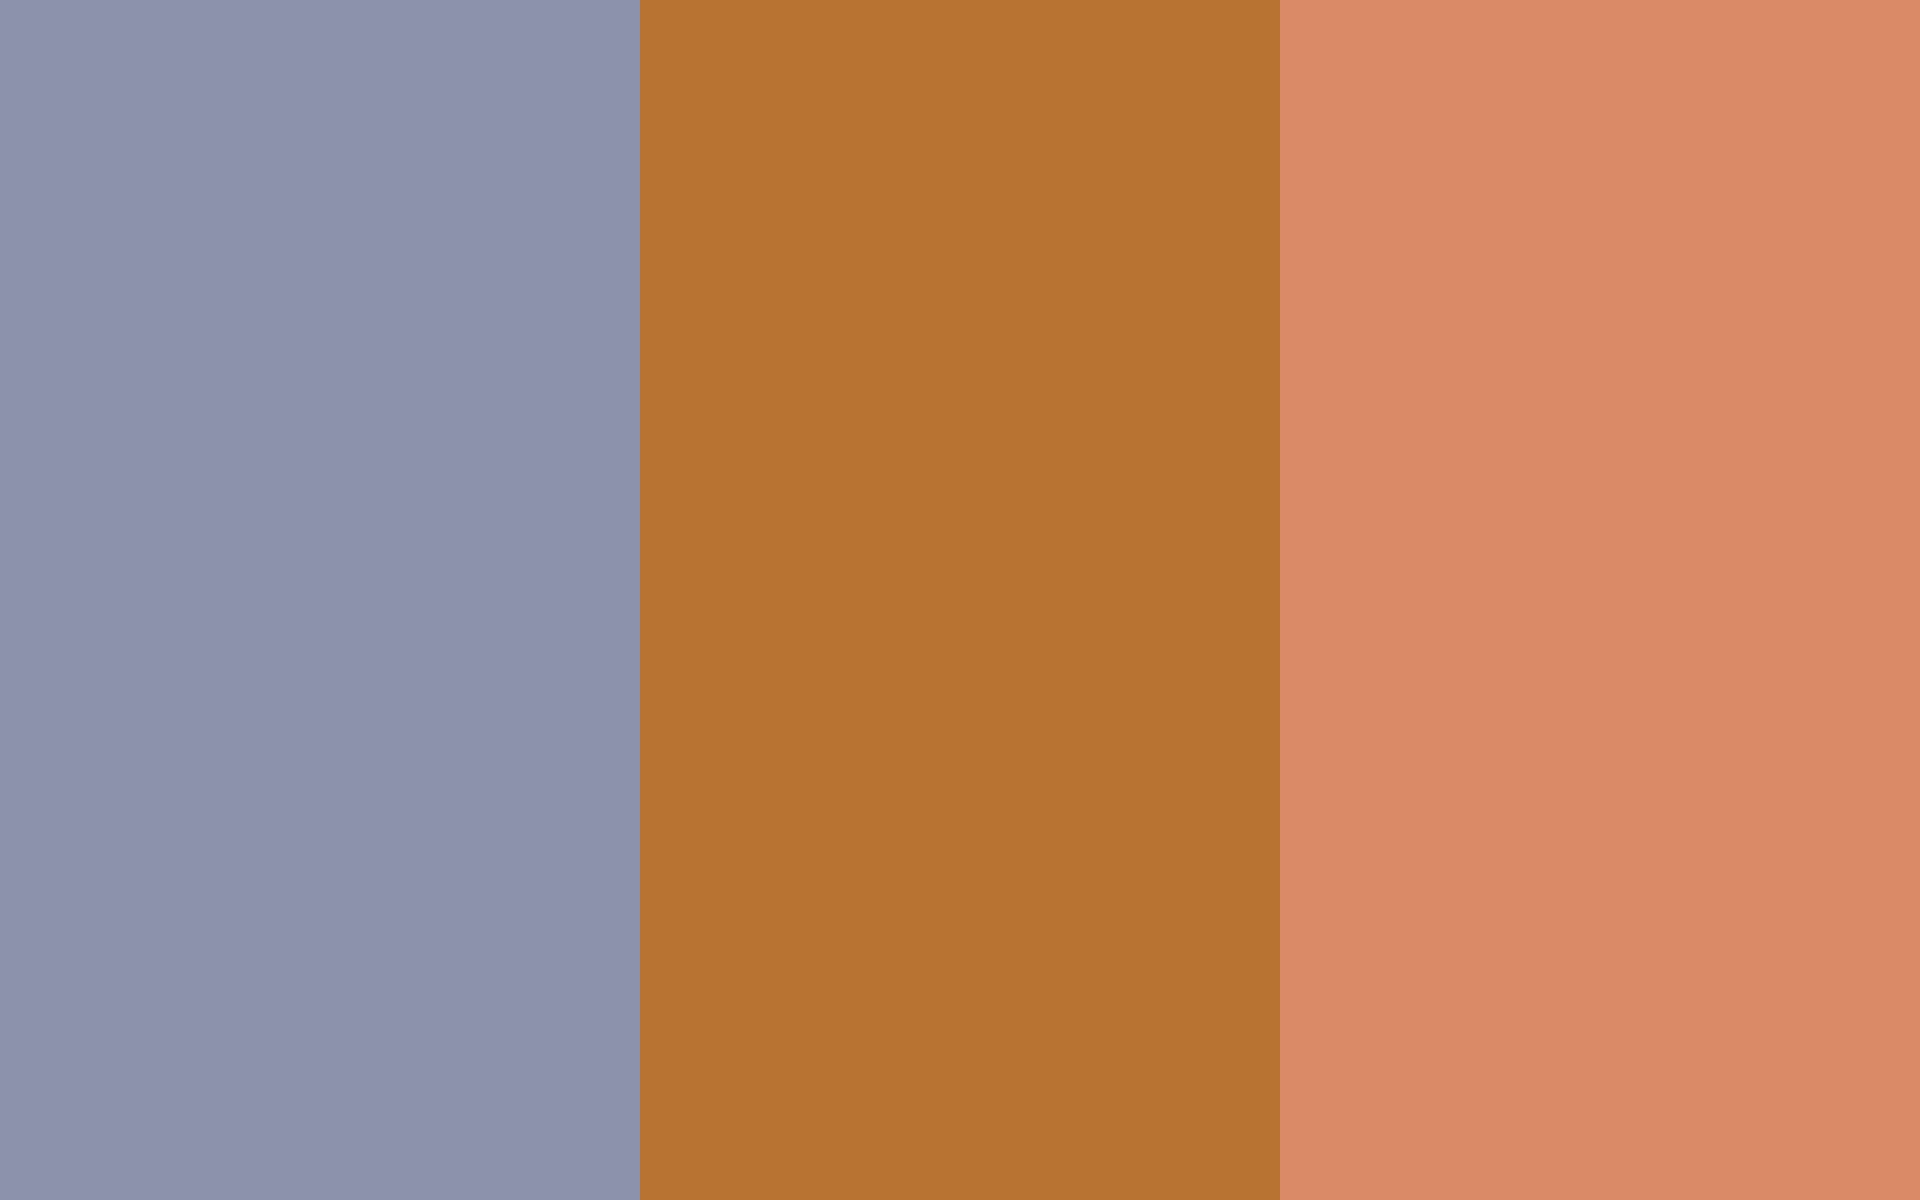 1920x1200 Cool Grey Copper and Copper Crayola Three Color Background 1920x1200